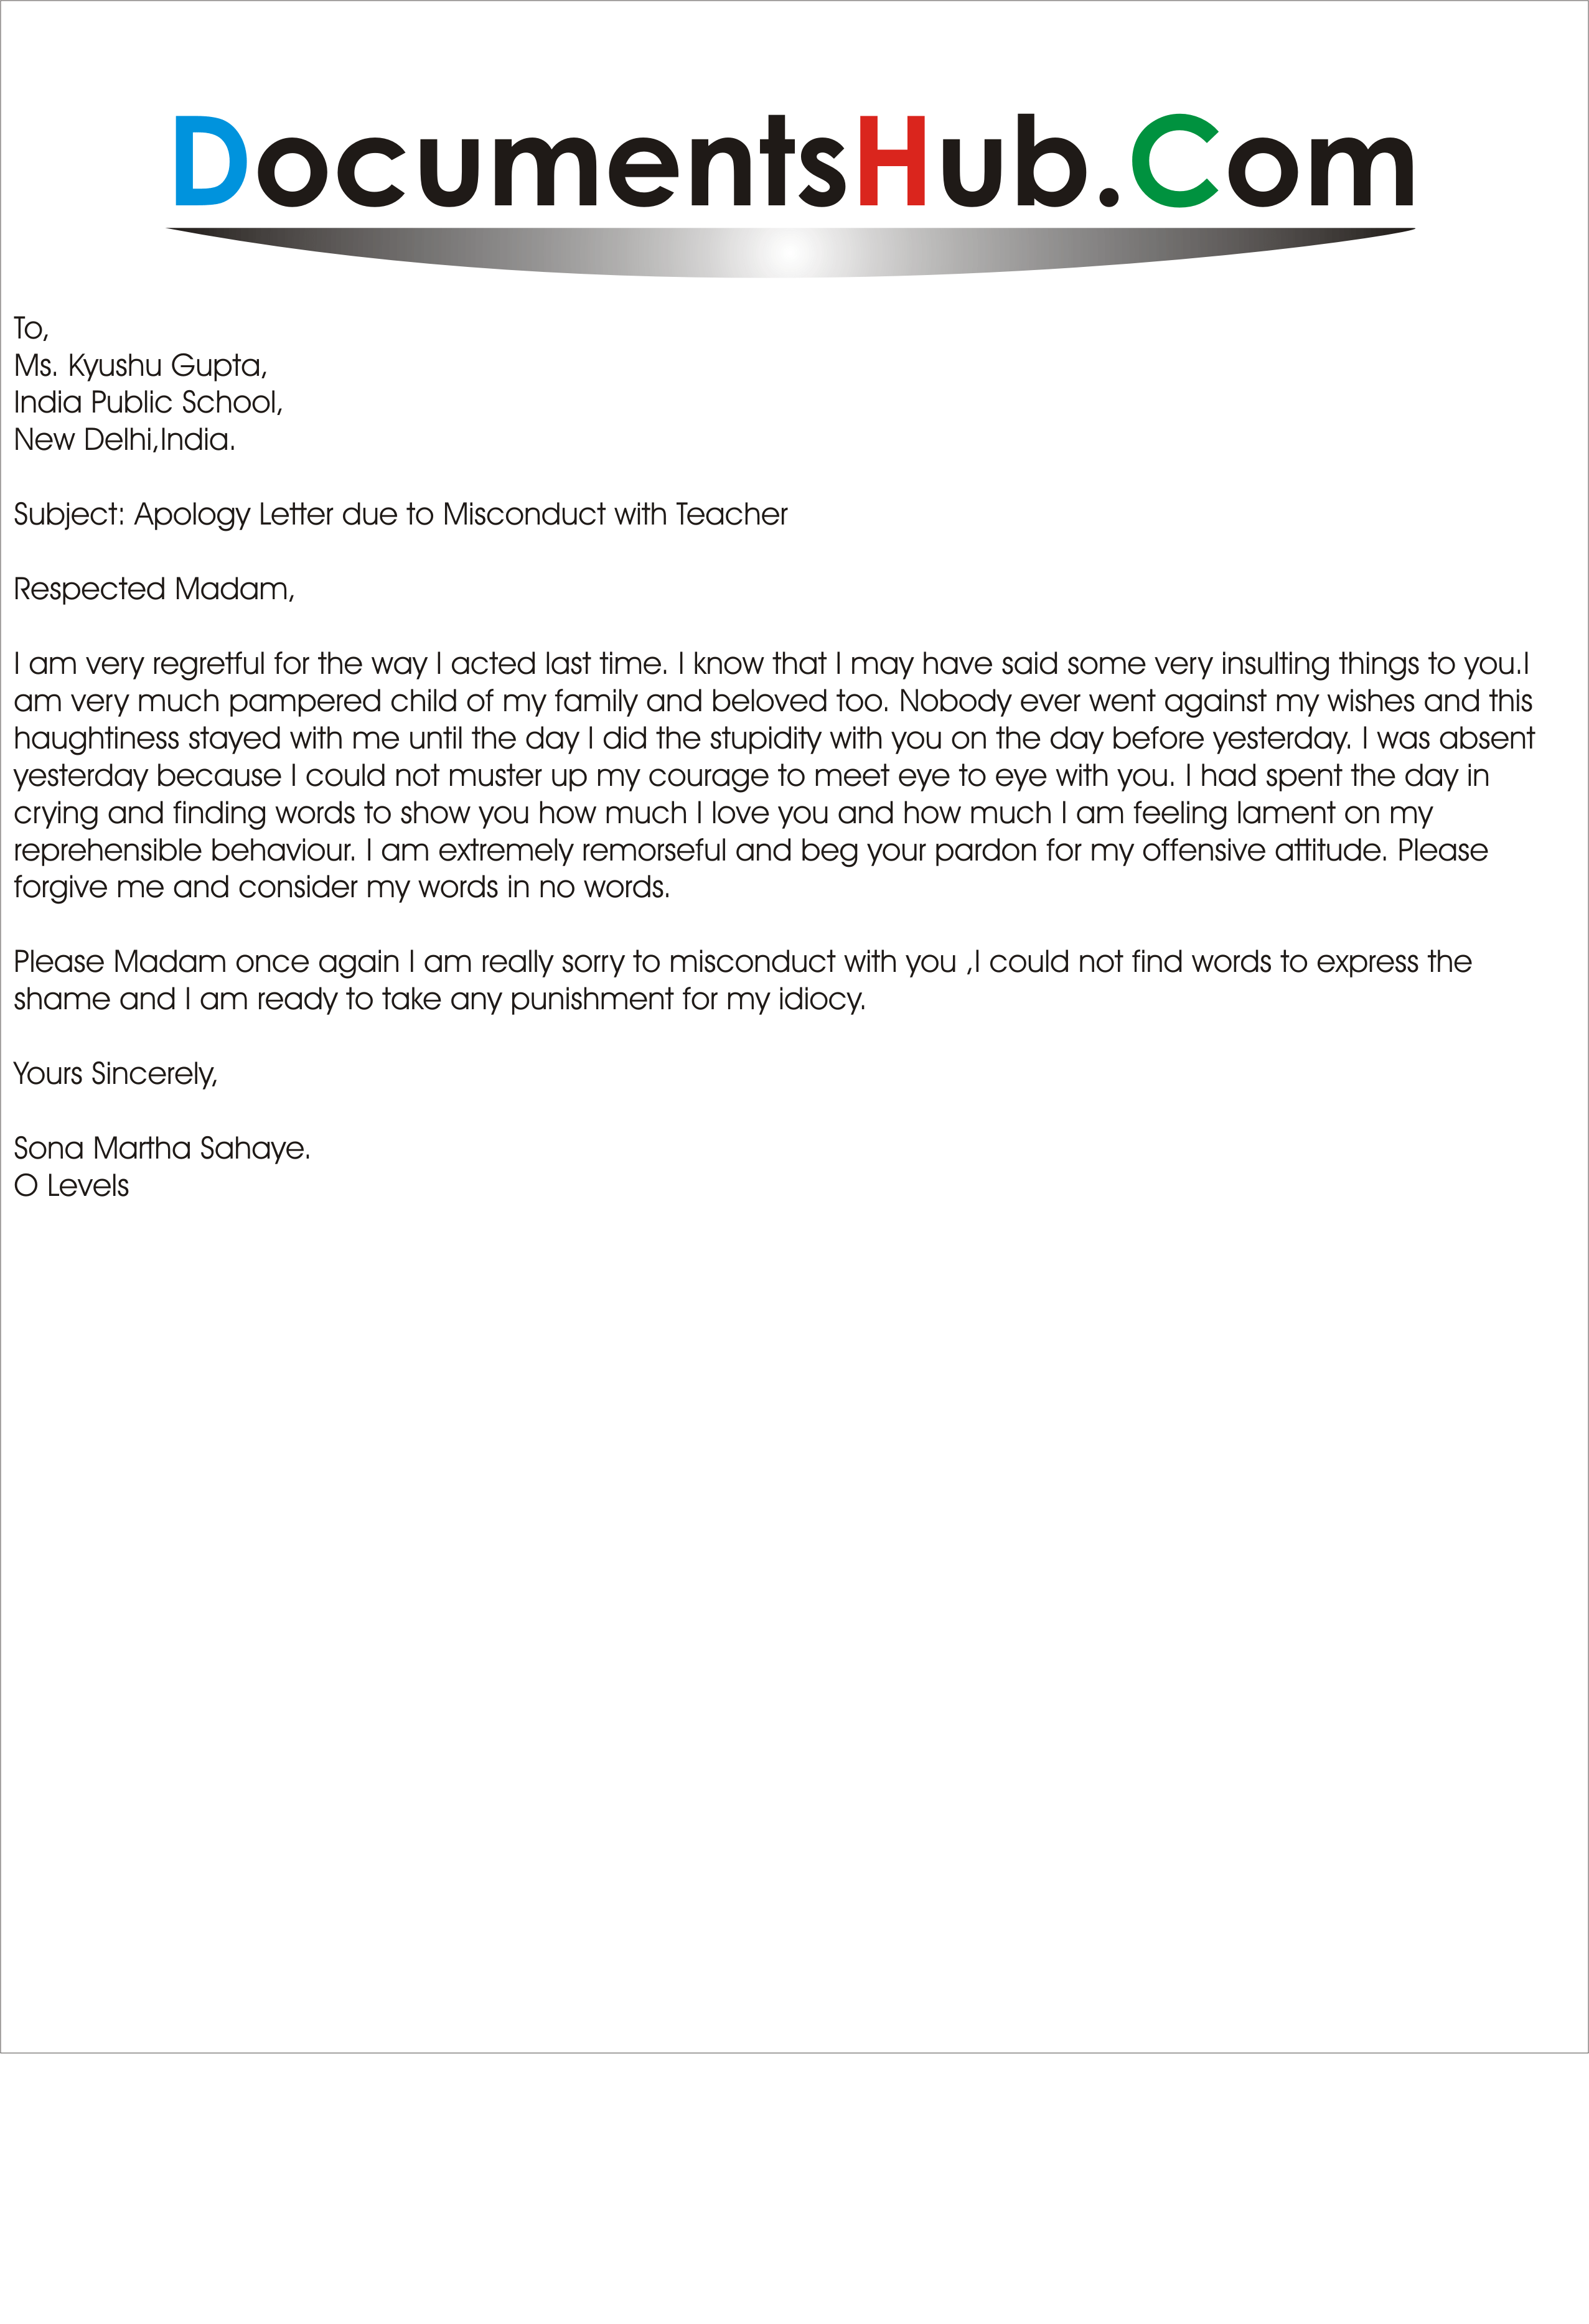 Letter due to Misconduct with Teacher